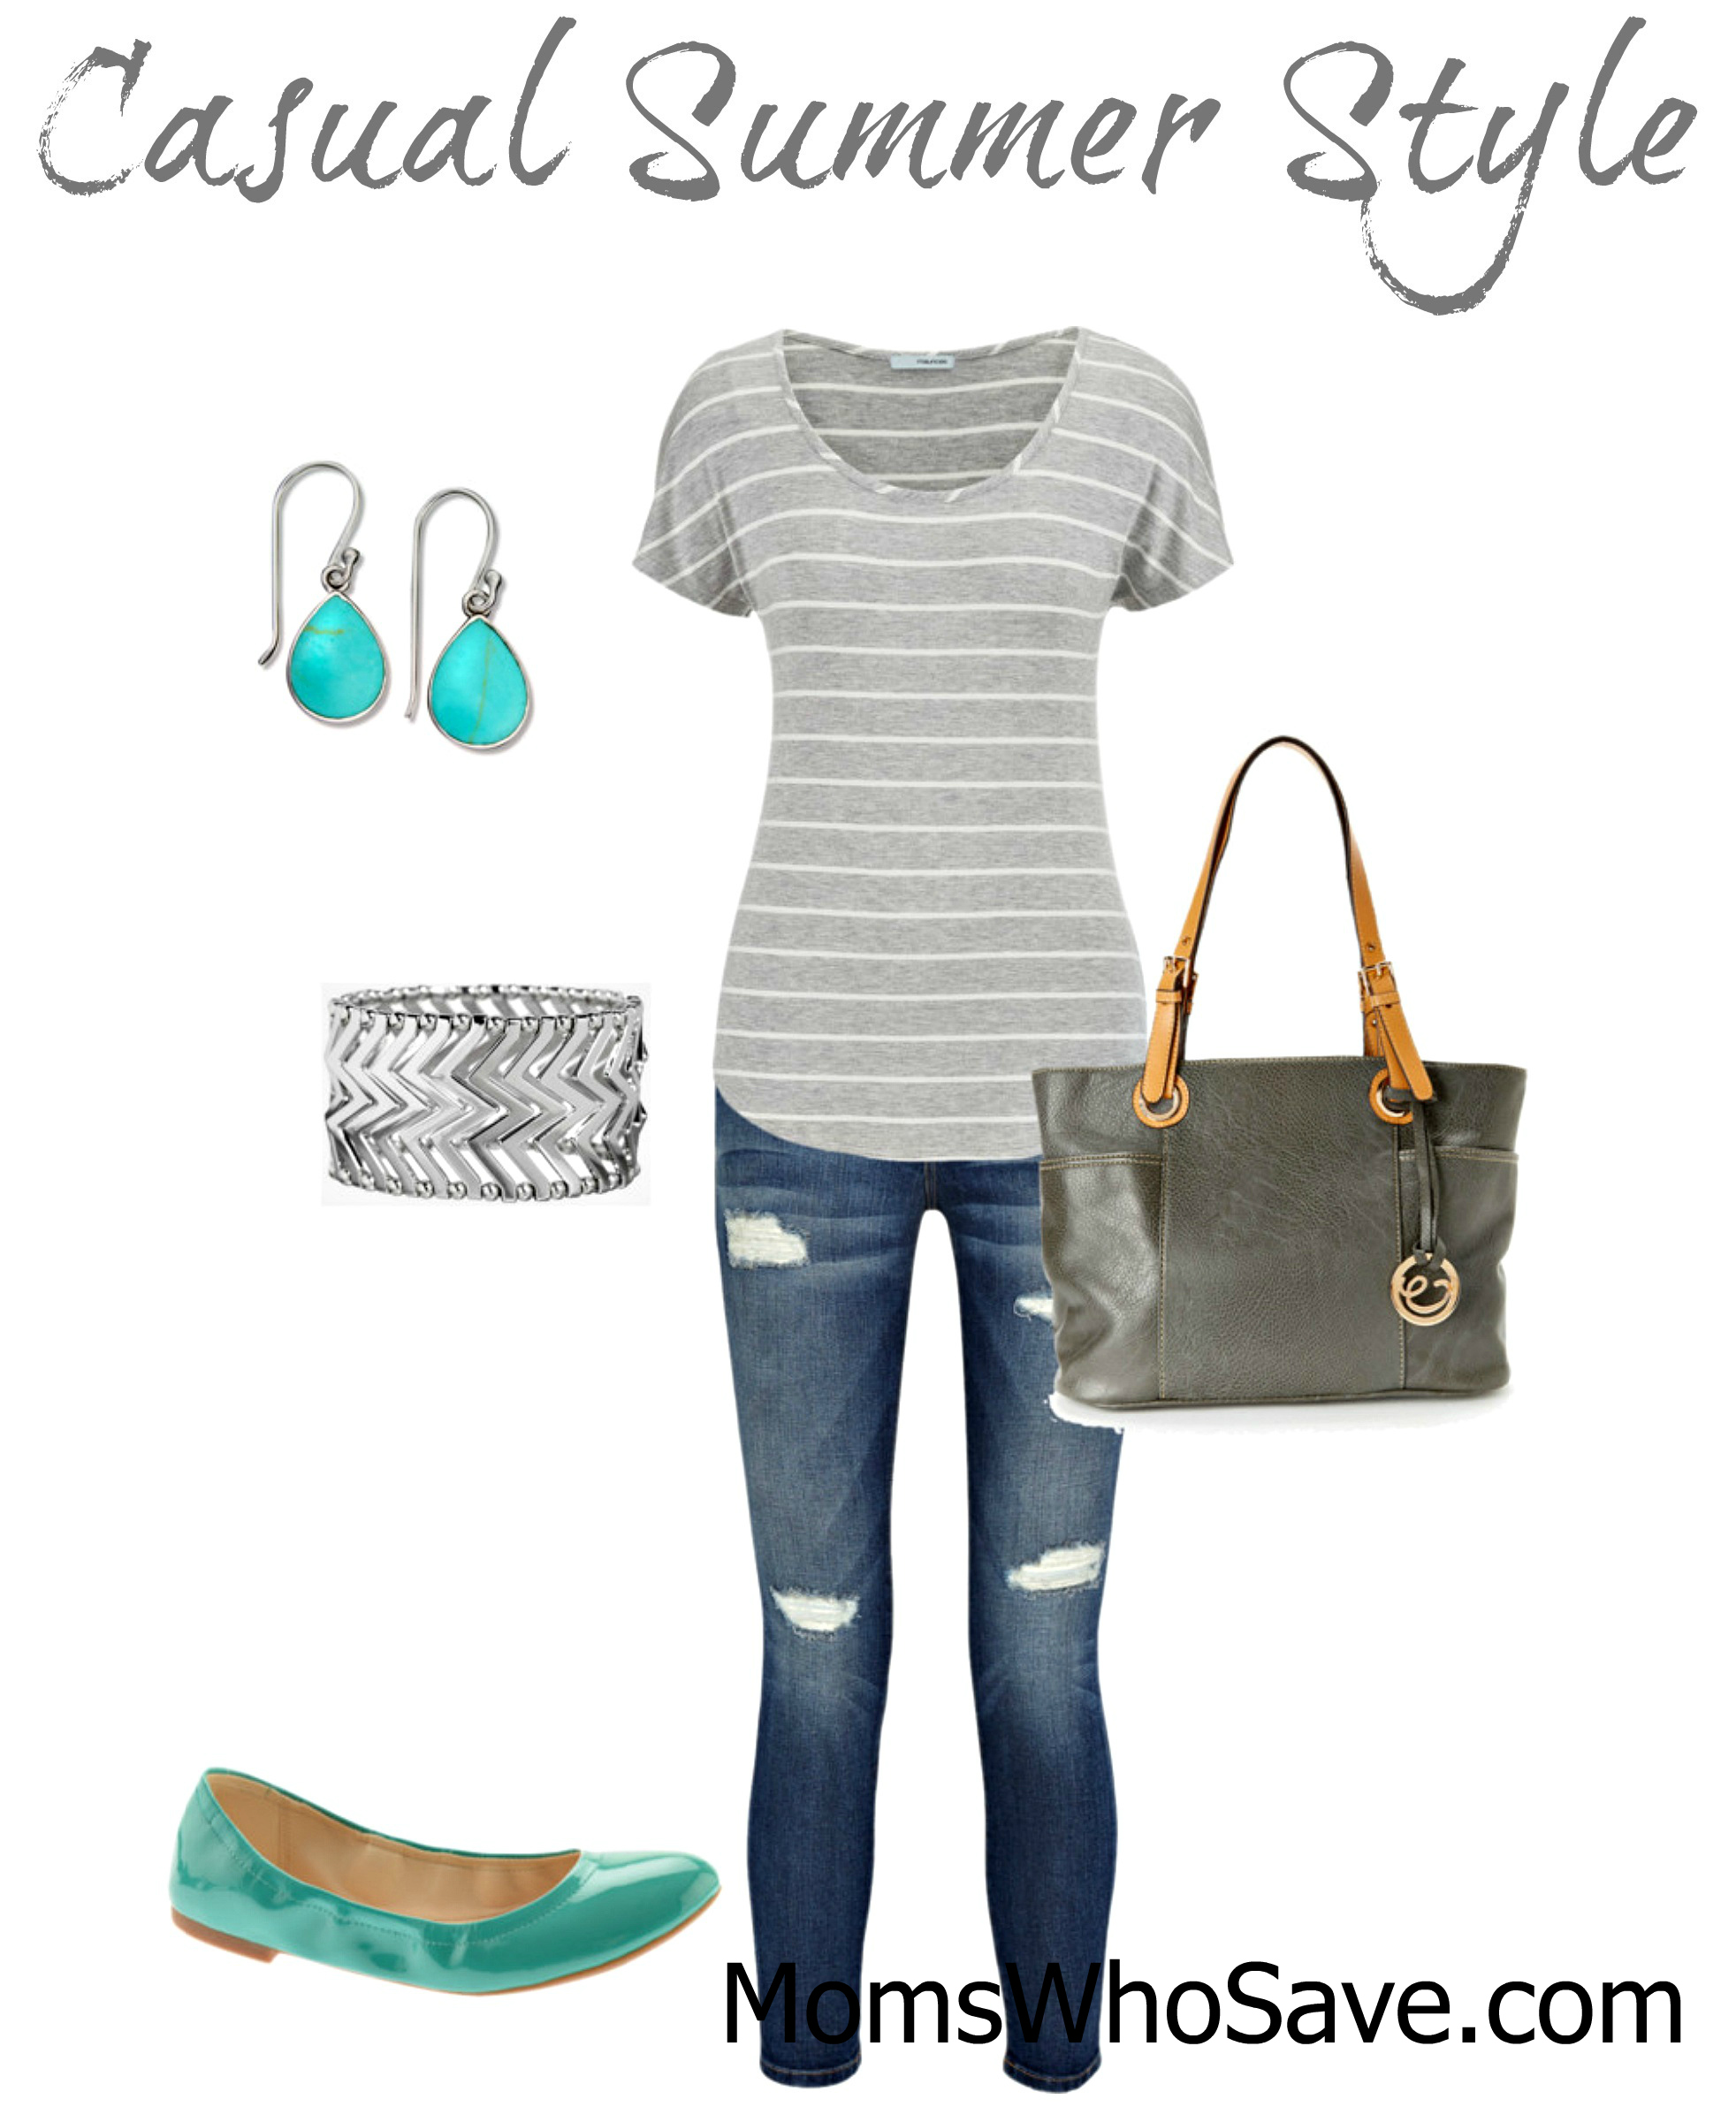 Casual Summer Style